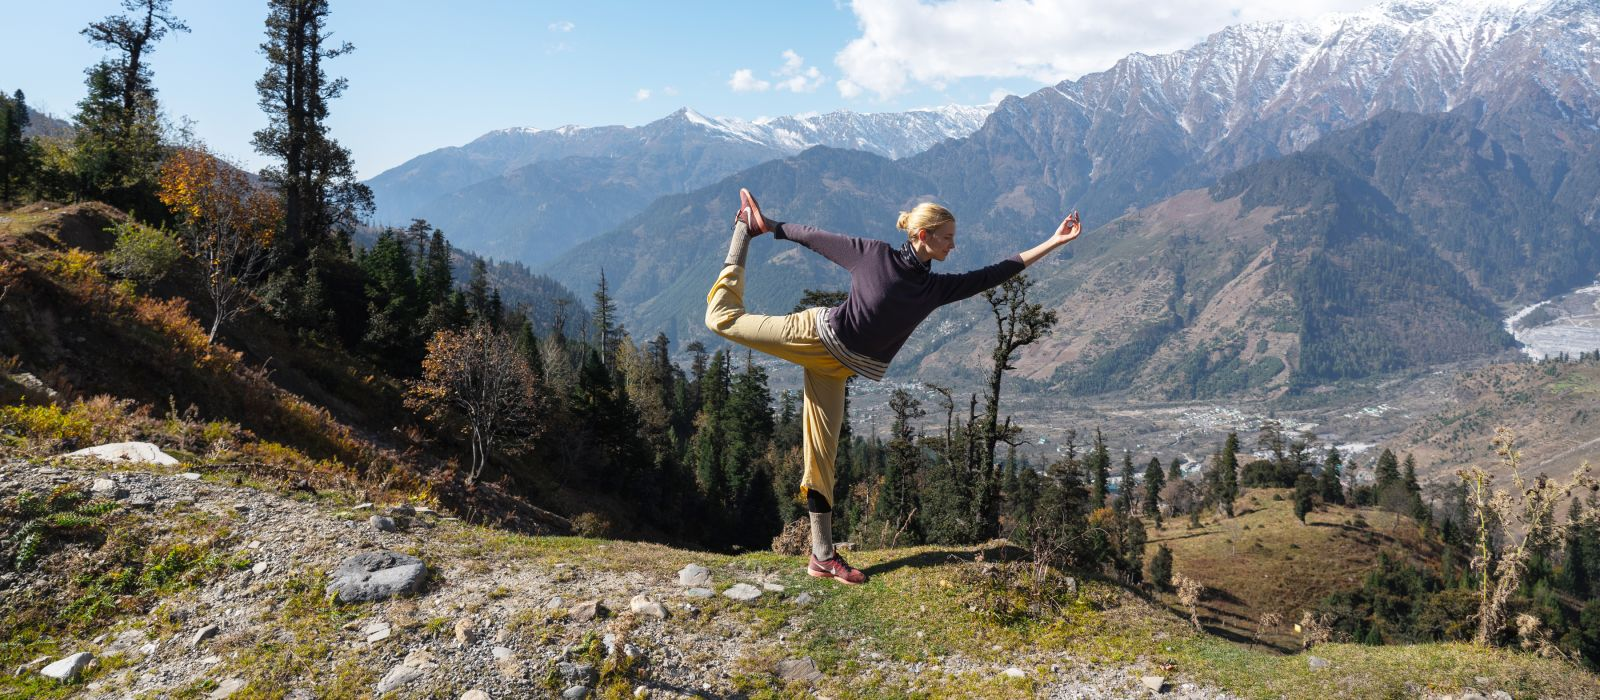 Dutch Women yoga posing, Himalayas, Manali Rohtang, India